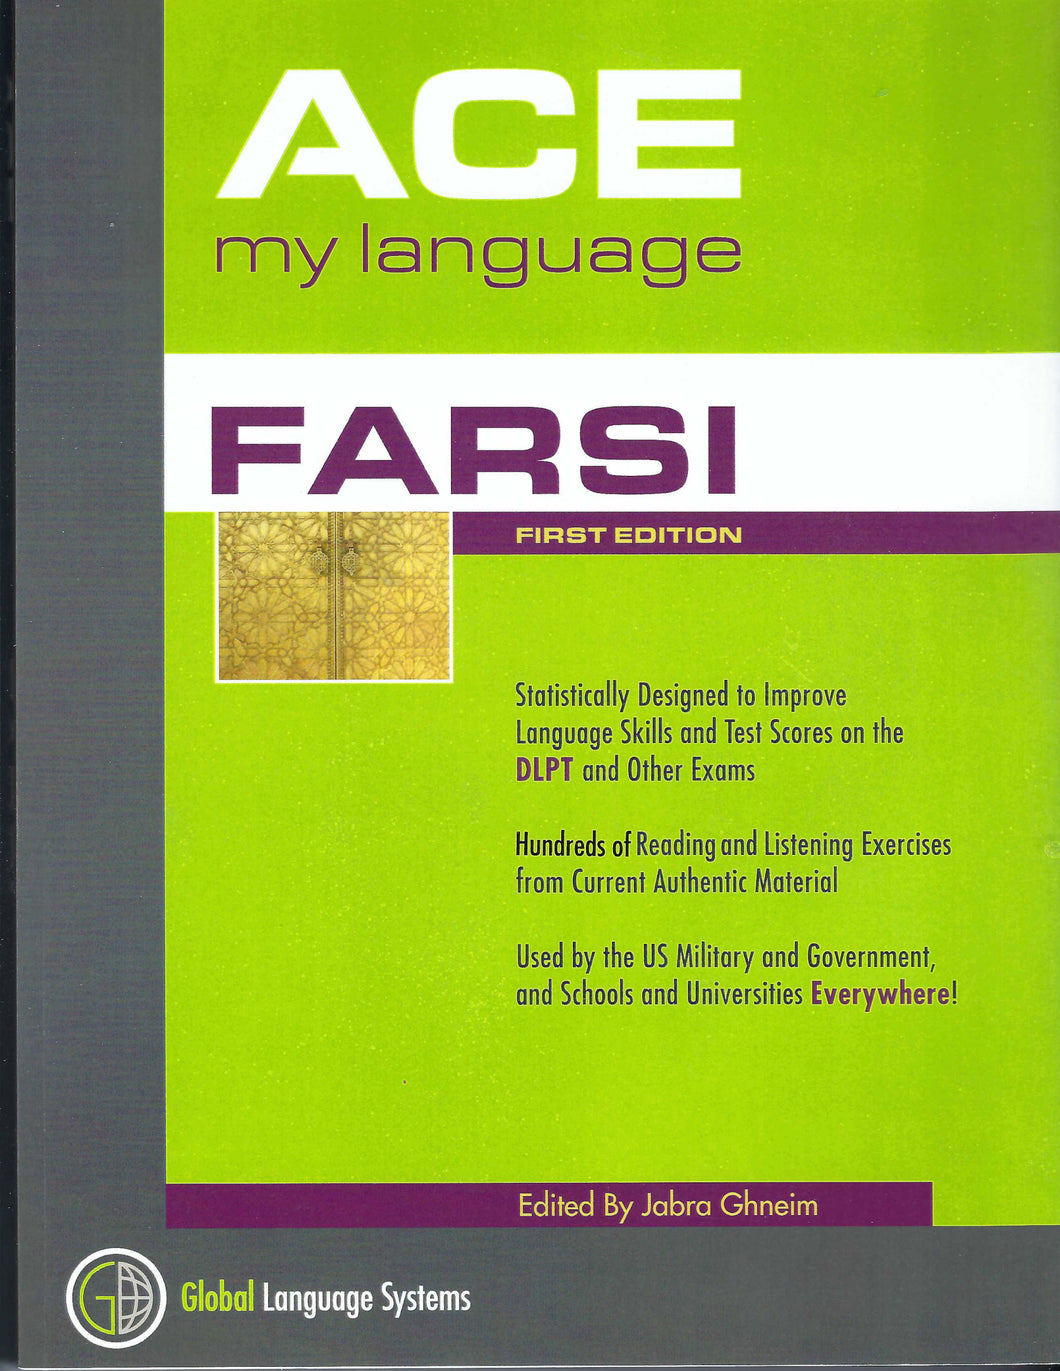 Ace My Language - FARSI